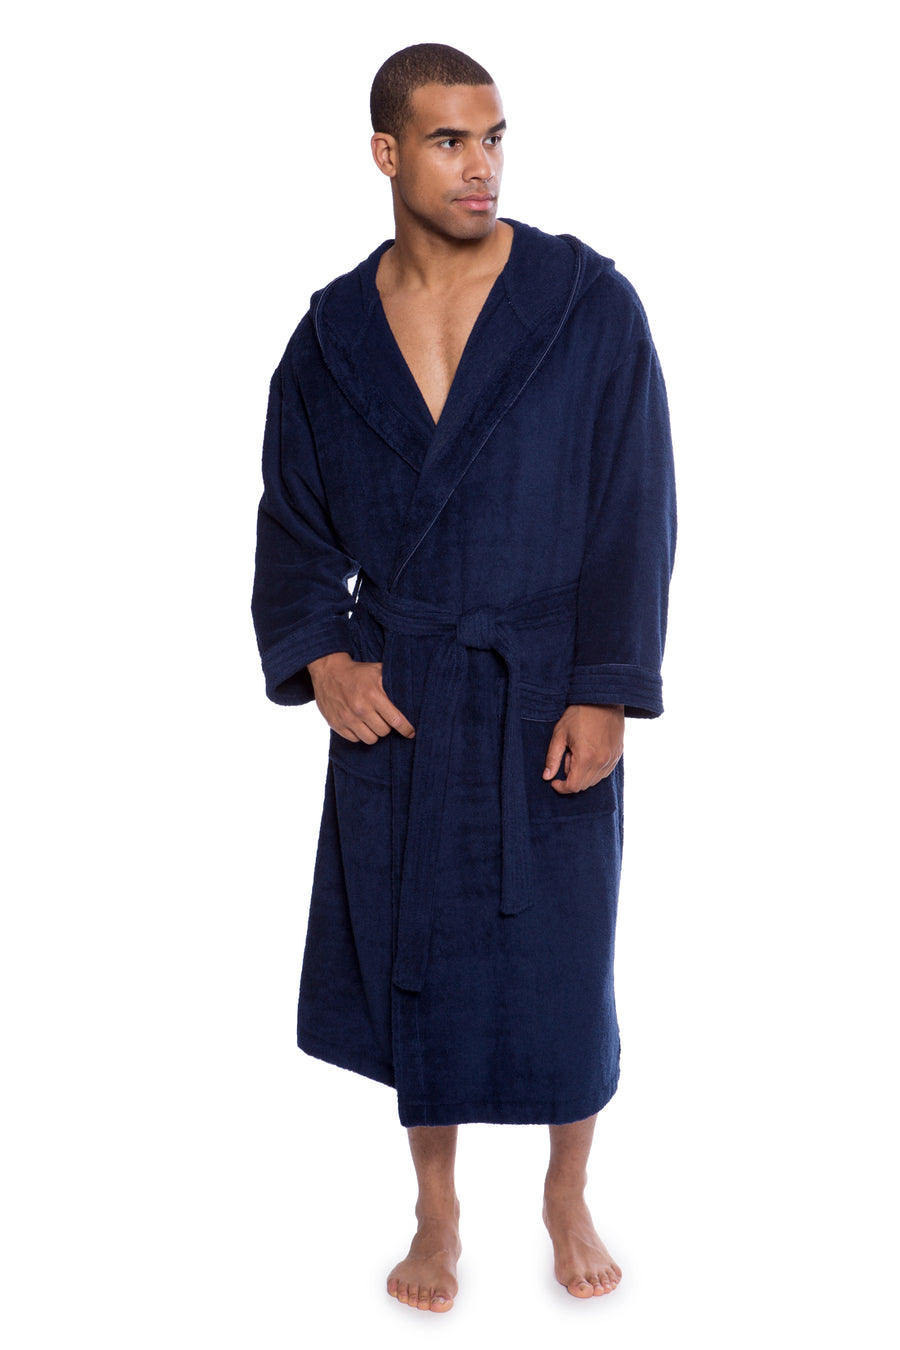 Eklips - Men's Bamboo Viscose Terry Hooded Robe - testing23451234 - Robes